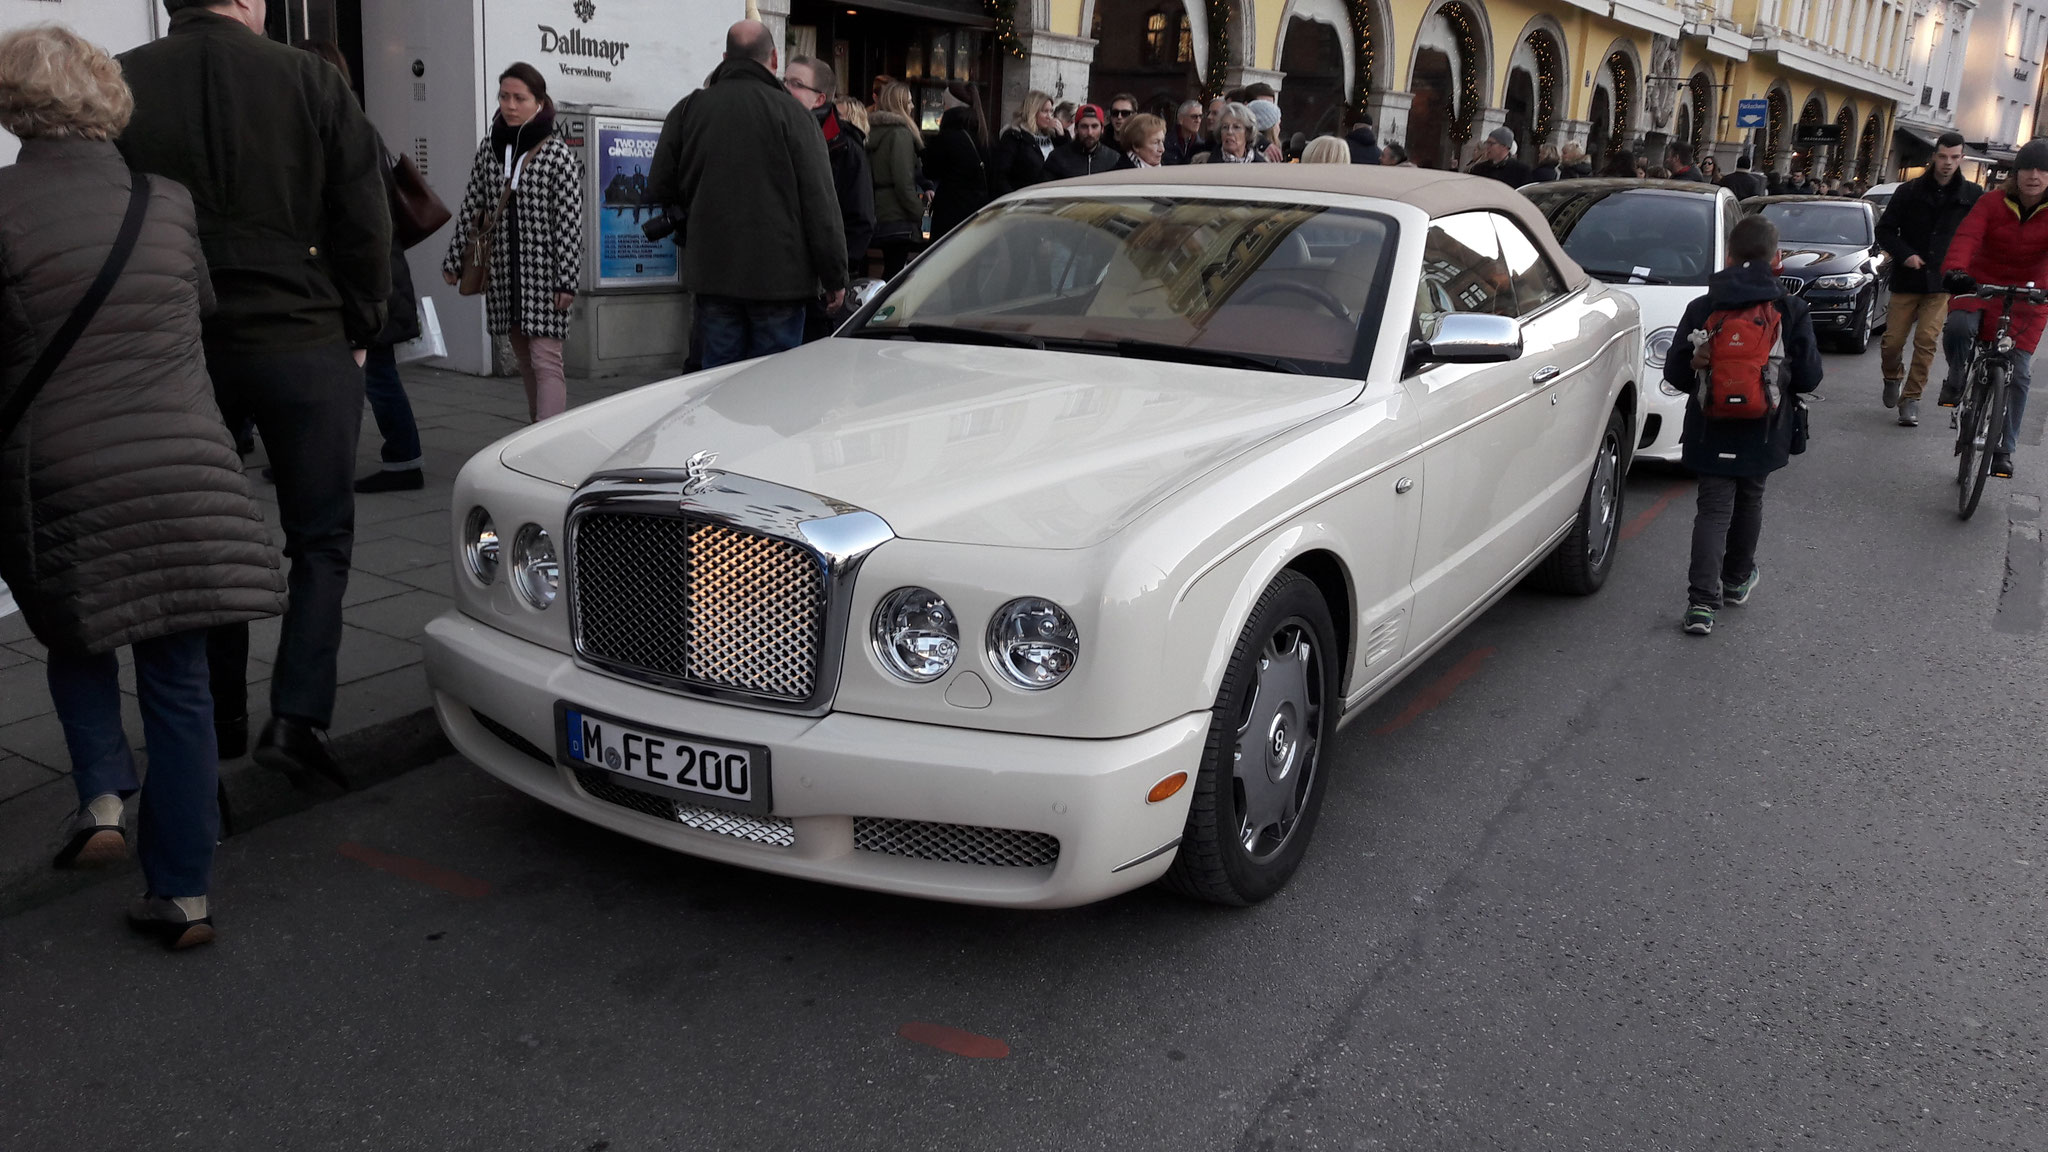 Bentley Azure - M-FE-200